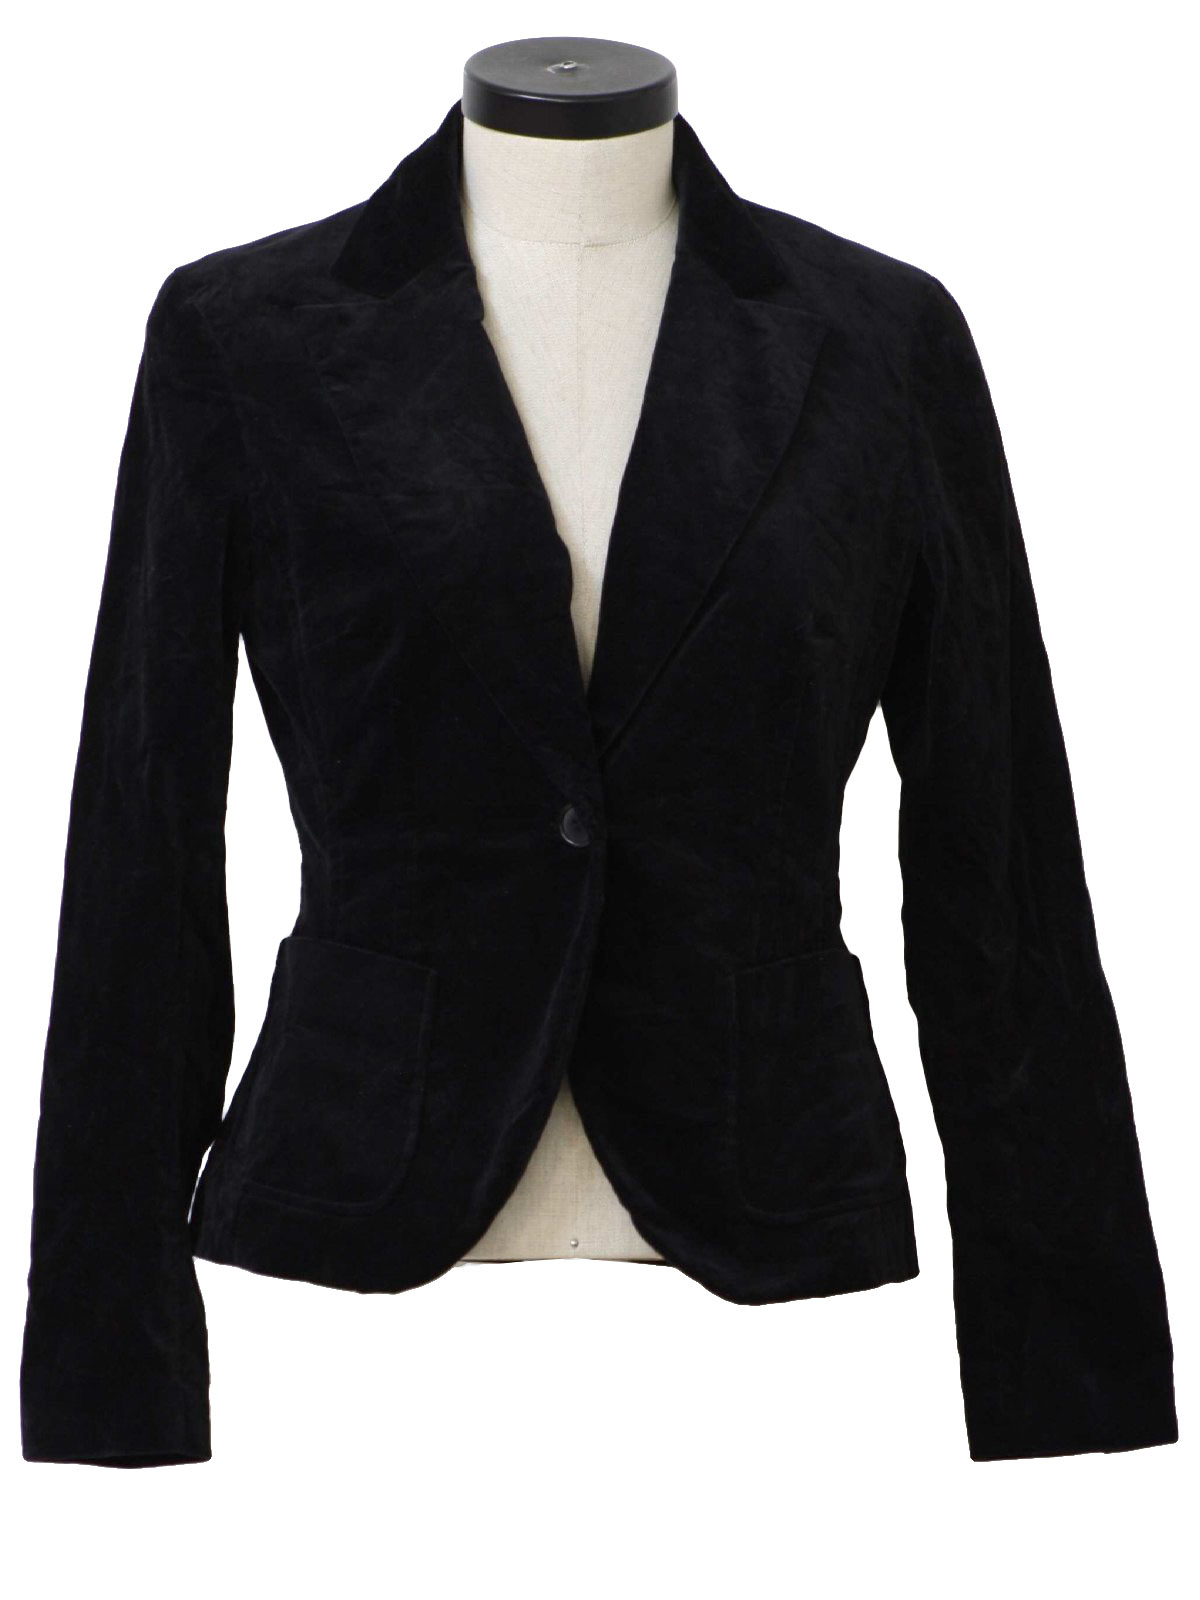 Images of Black Womens Blazer - Reikian